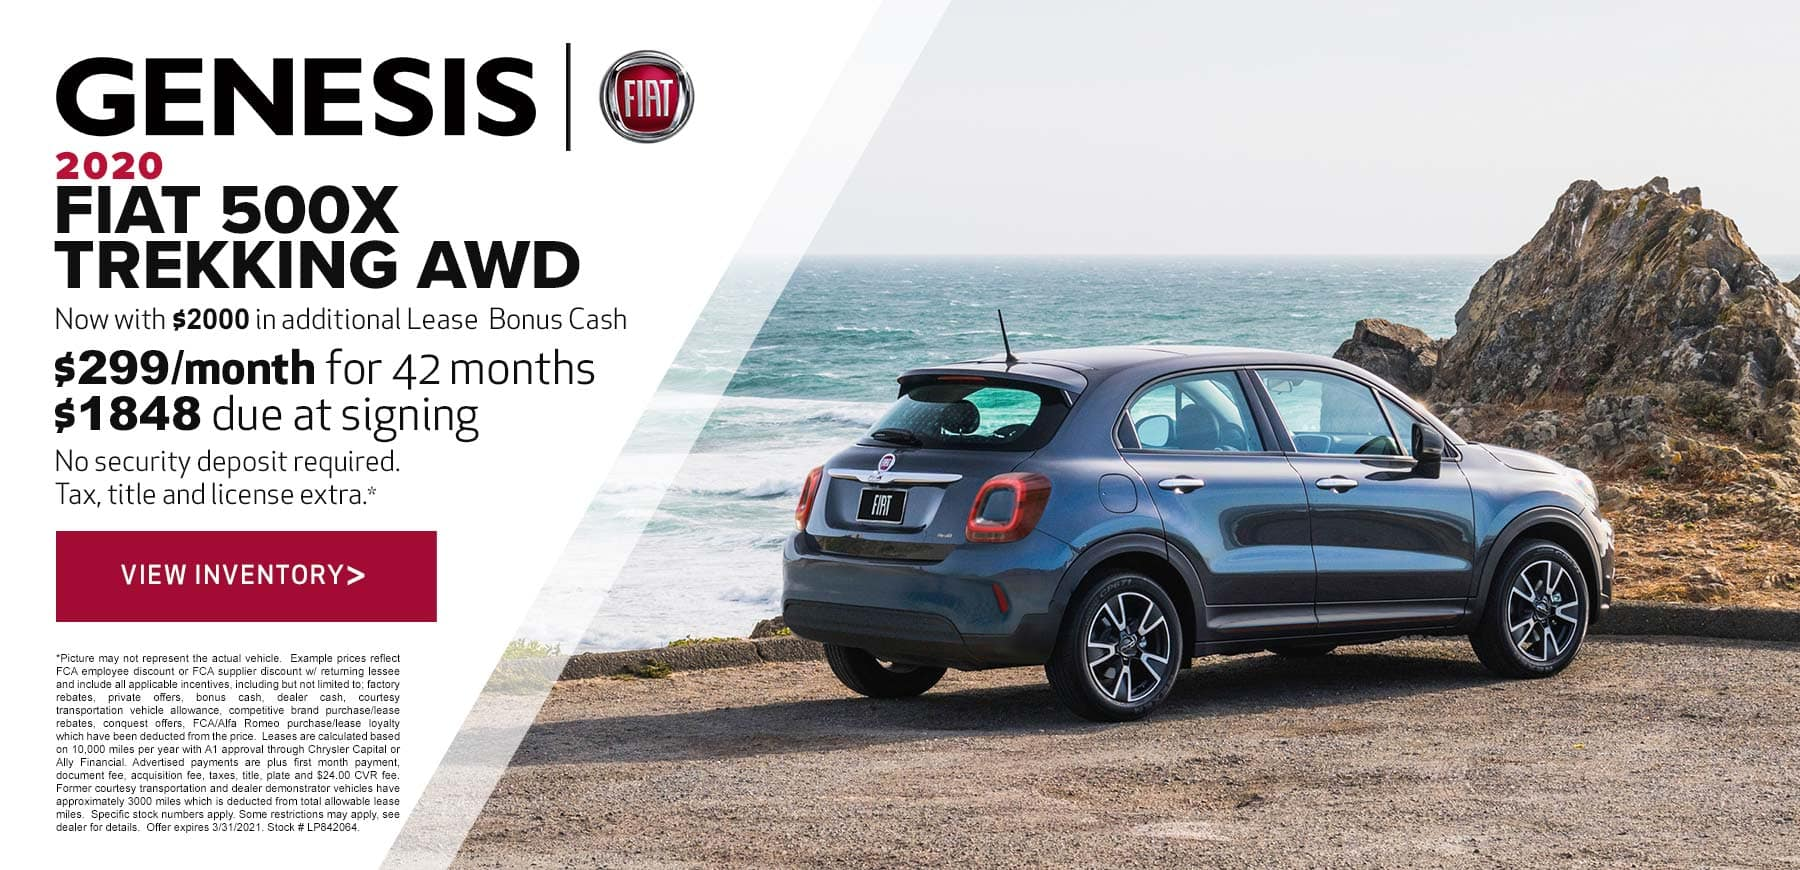 Genesis FIAT March 2021 500X Trekking Lease Offer